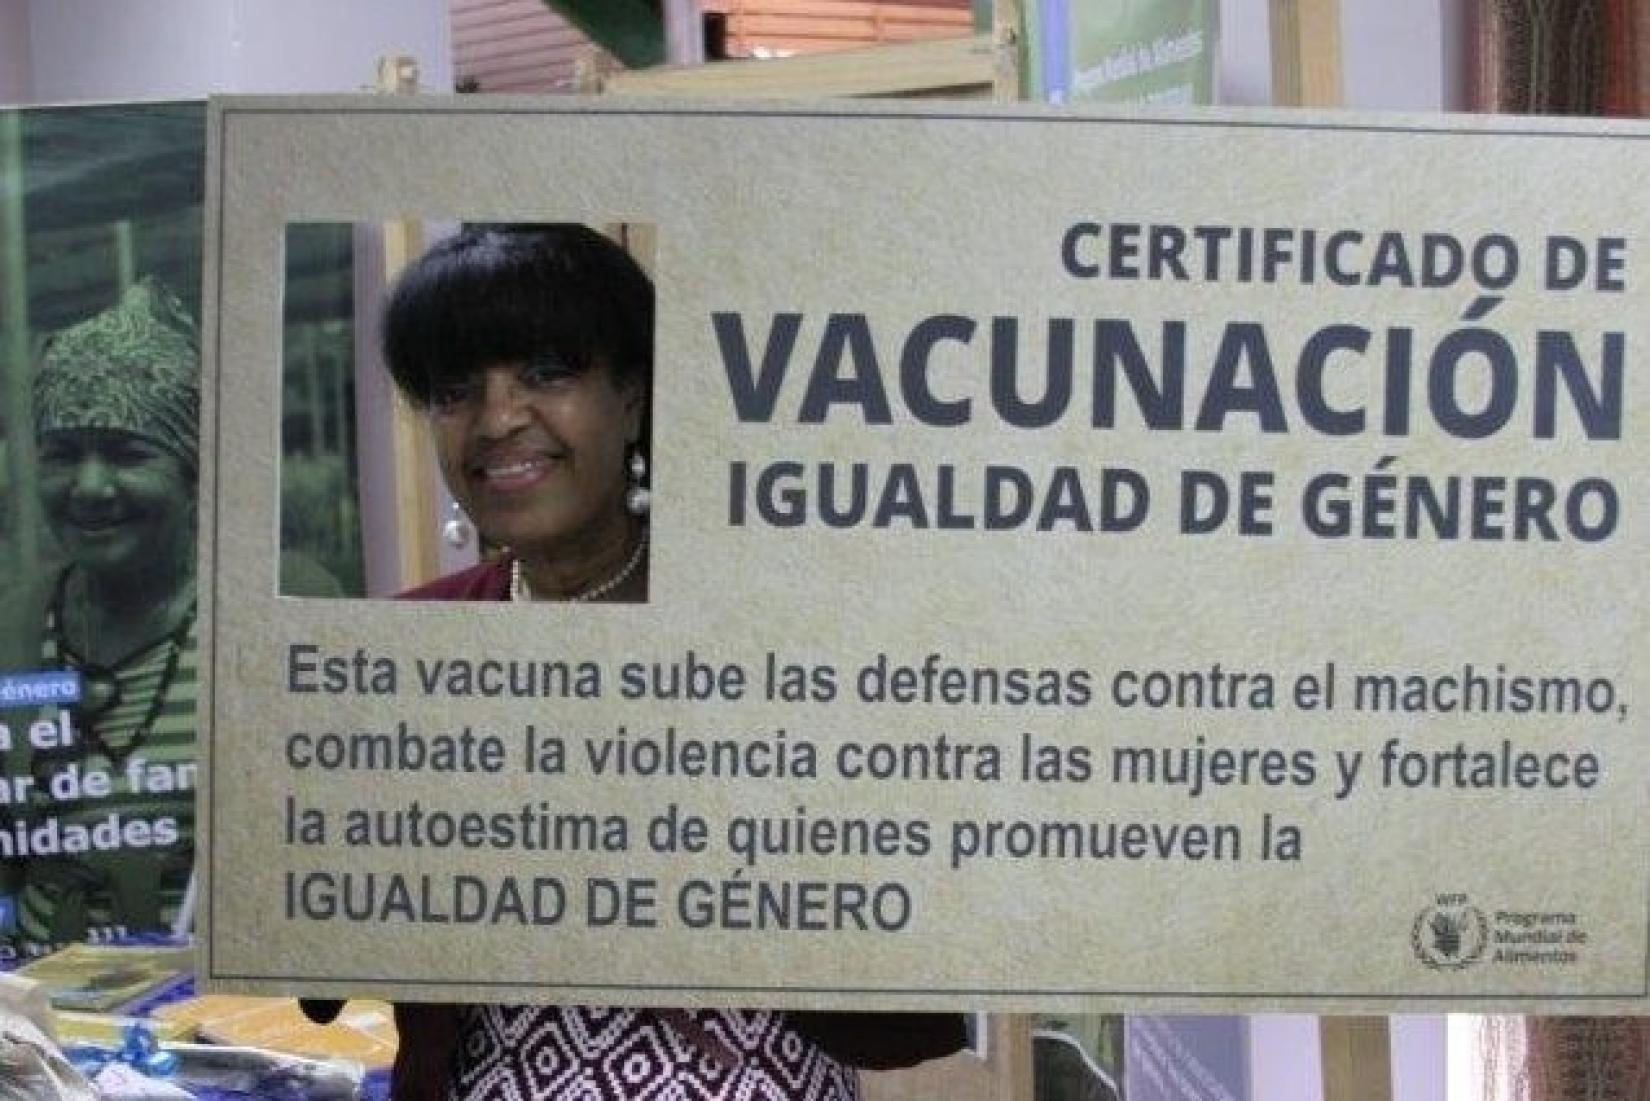 Yudith stands with her head in a cut of a giant-sized gender equality certificate.